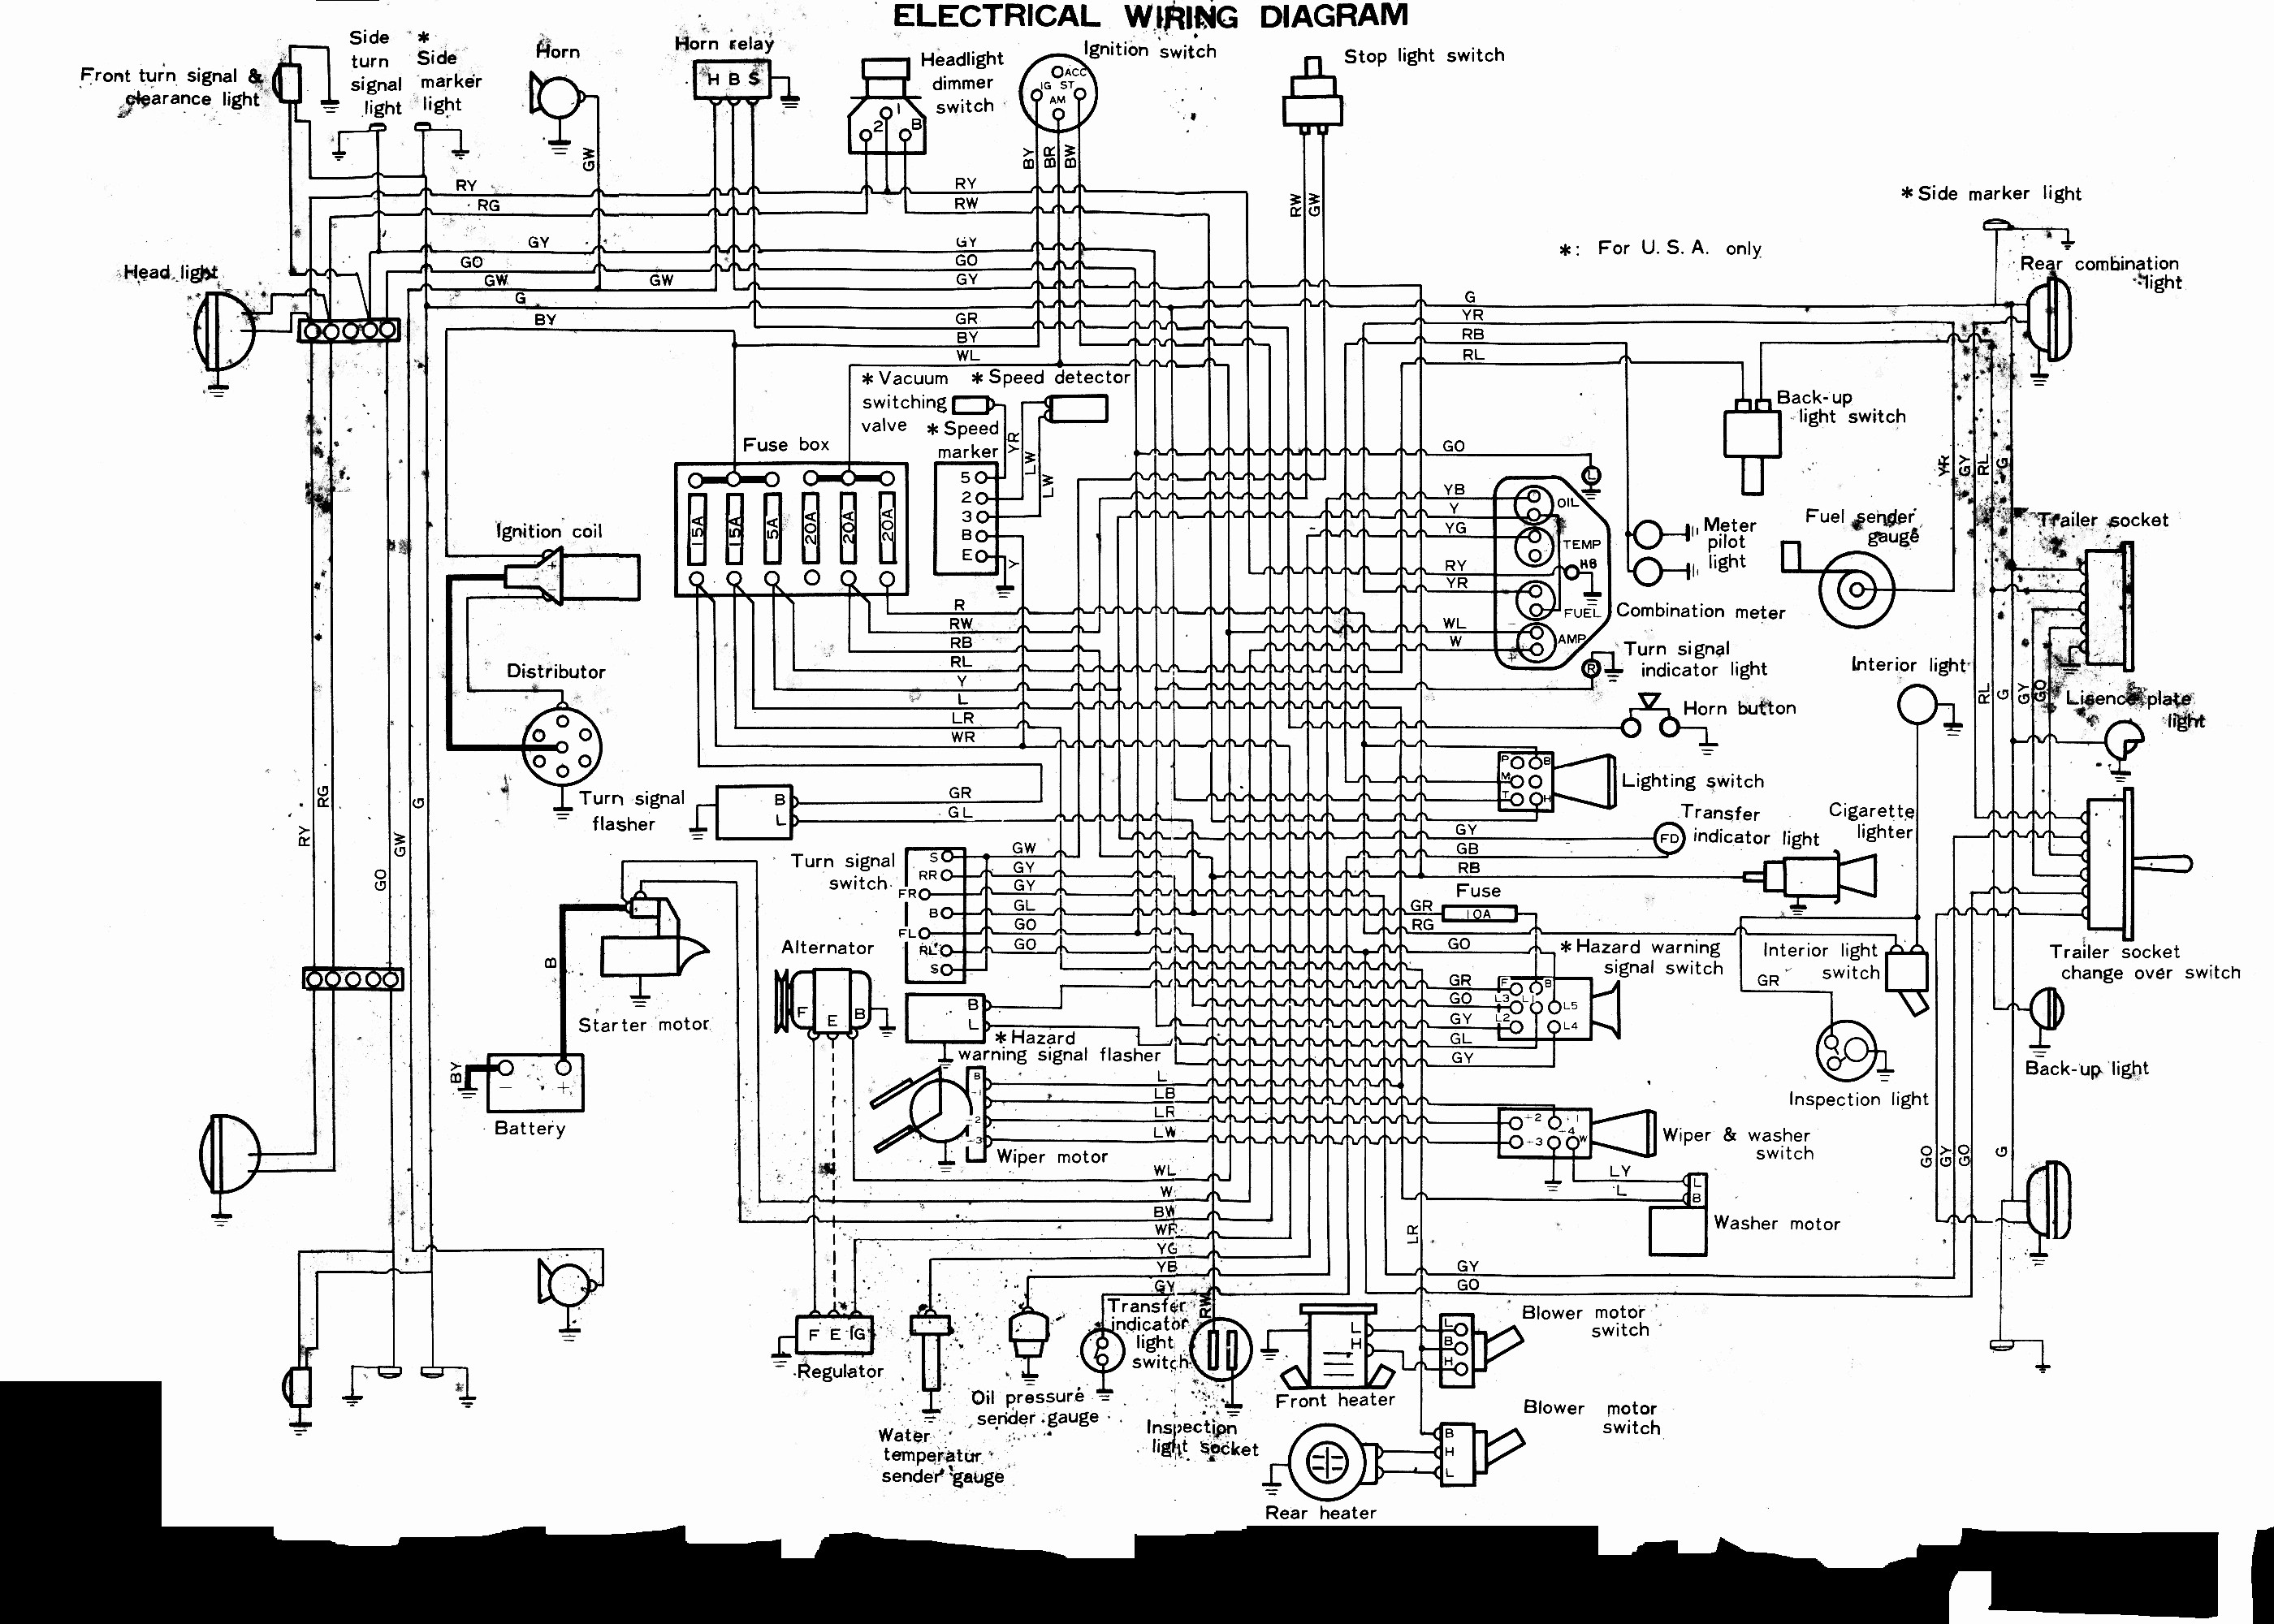 2006 Chrysler Sebring Wiring Diagram Diagram Base Website Wiring Diagram -  UMLDIAGRAM.ITASEINAUDI.ITDiagram Base Website Full Edition